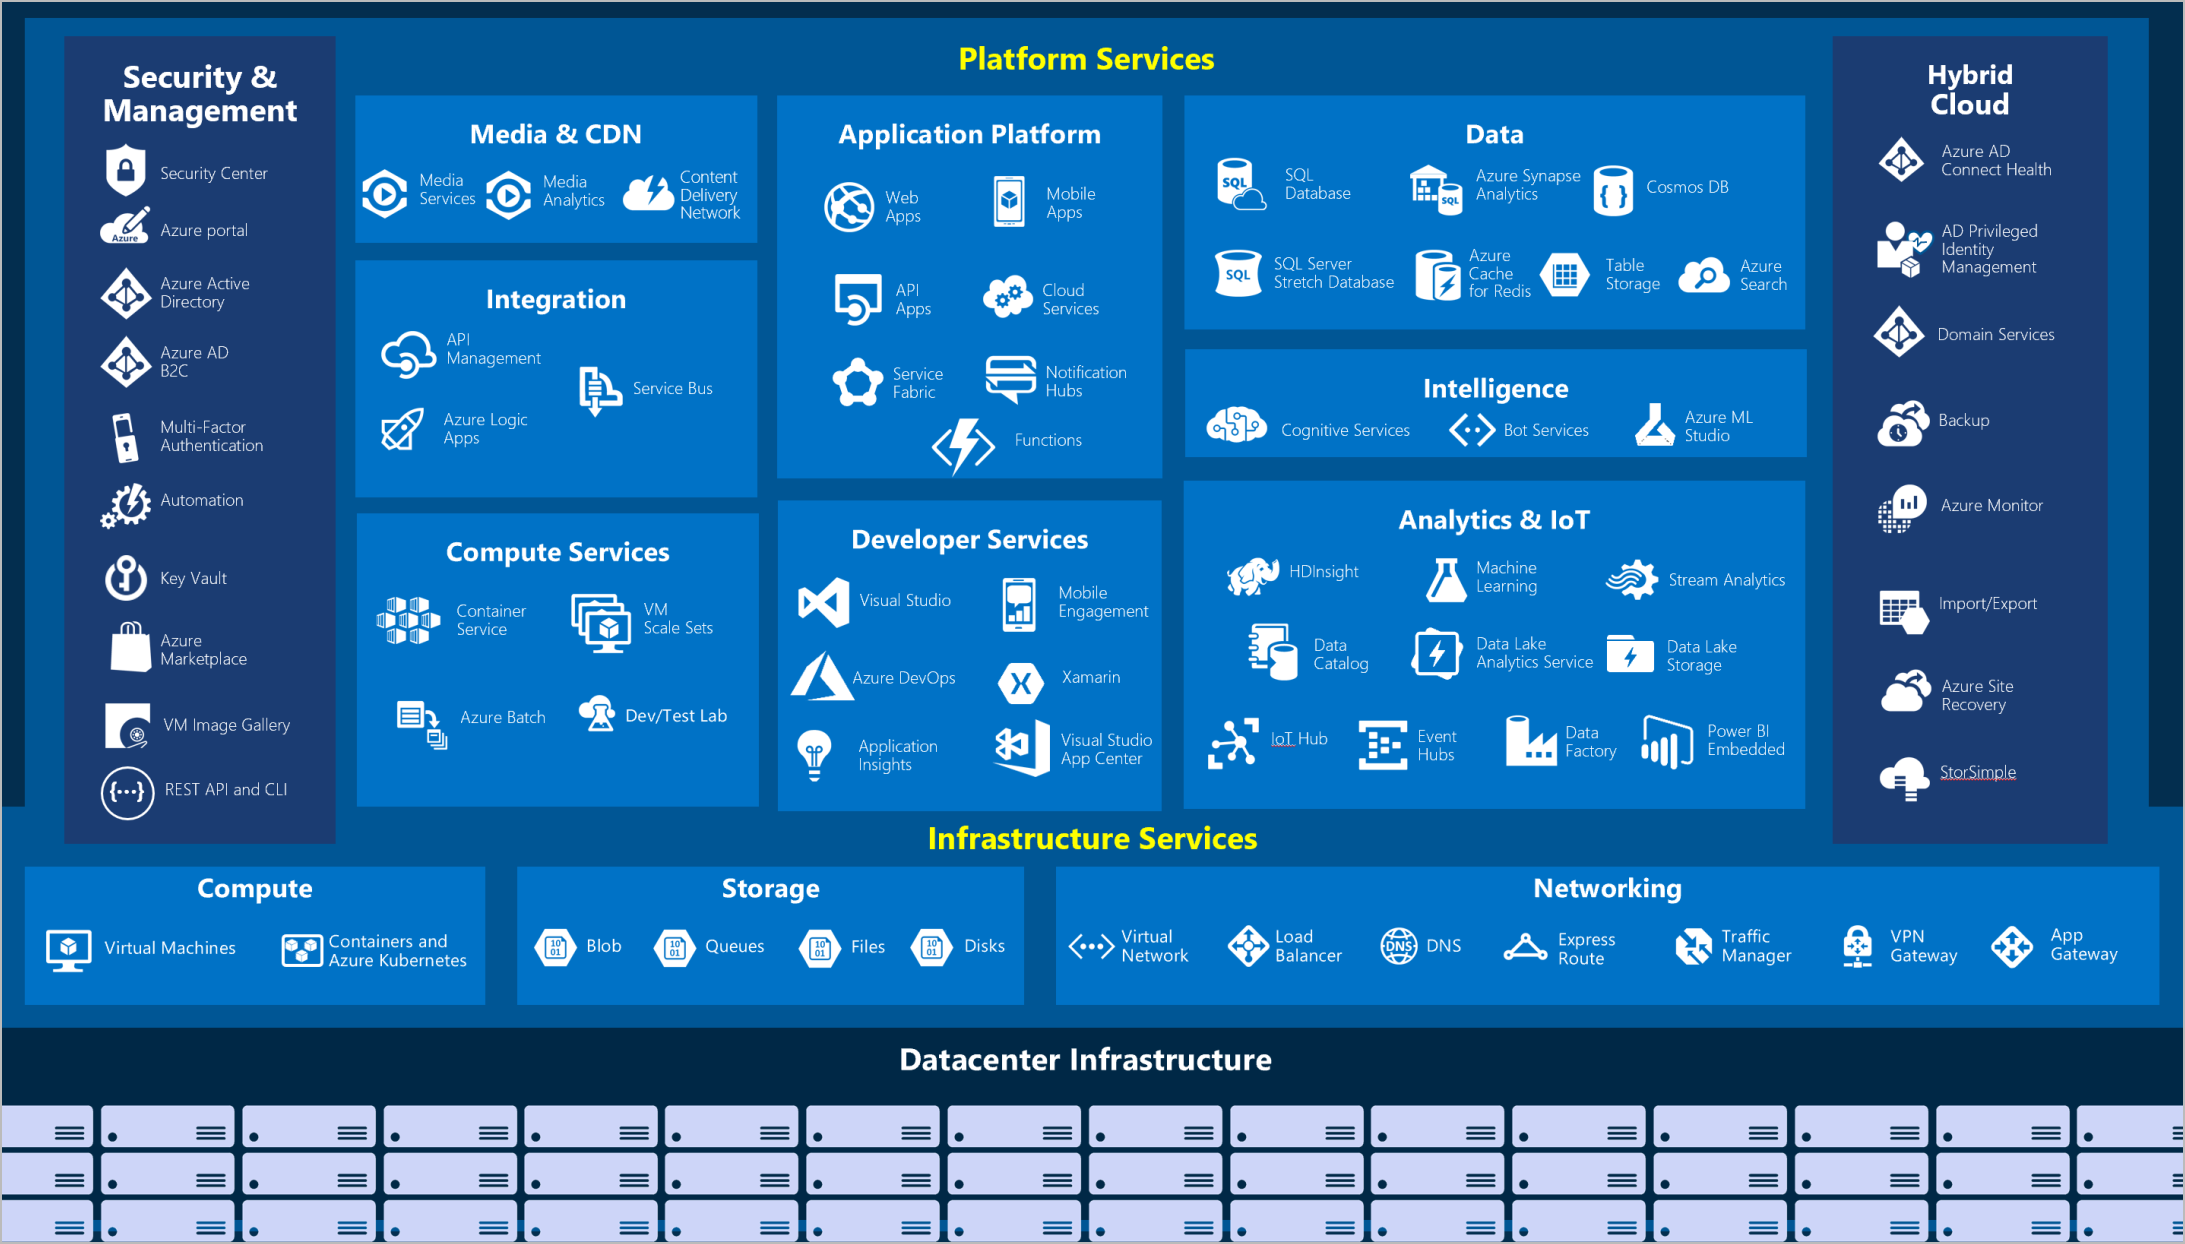 https://docs.microsoft.com/en-us/learn/azure-fundamentals/intro-to-azure-fundamentals/media/azure-services.png